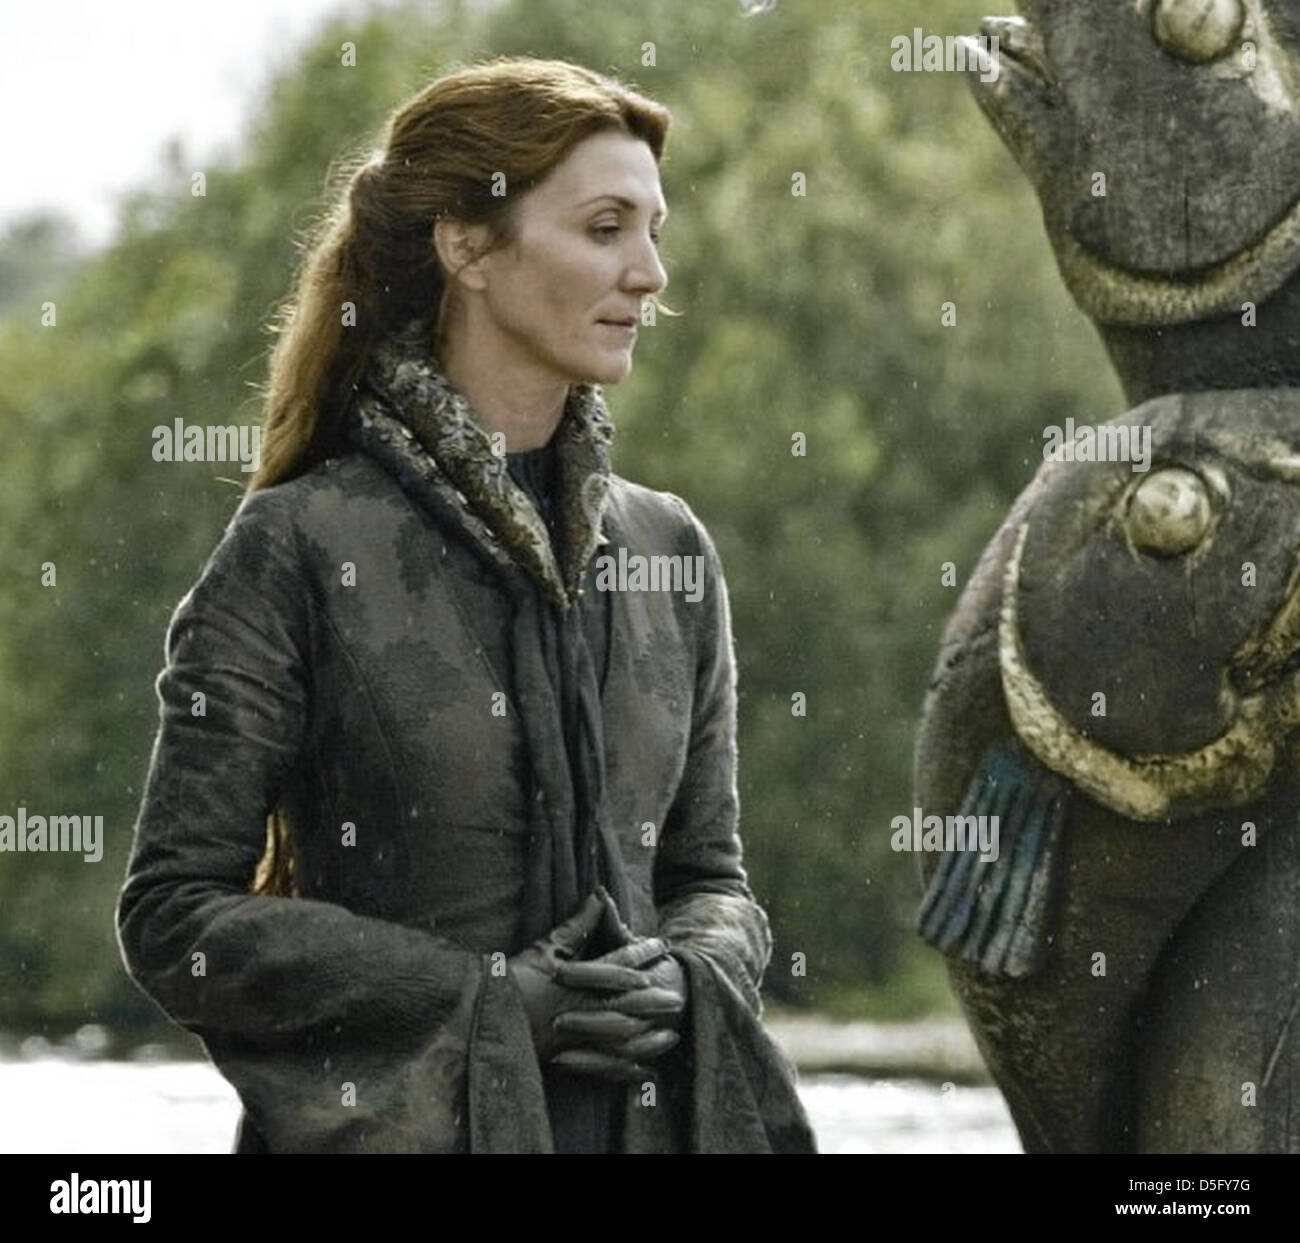 GAME OF THRONES  2011 HBO TV series with Michelle Fairley - Stock Image